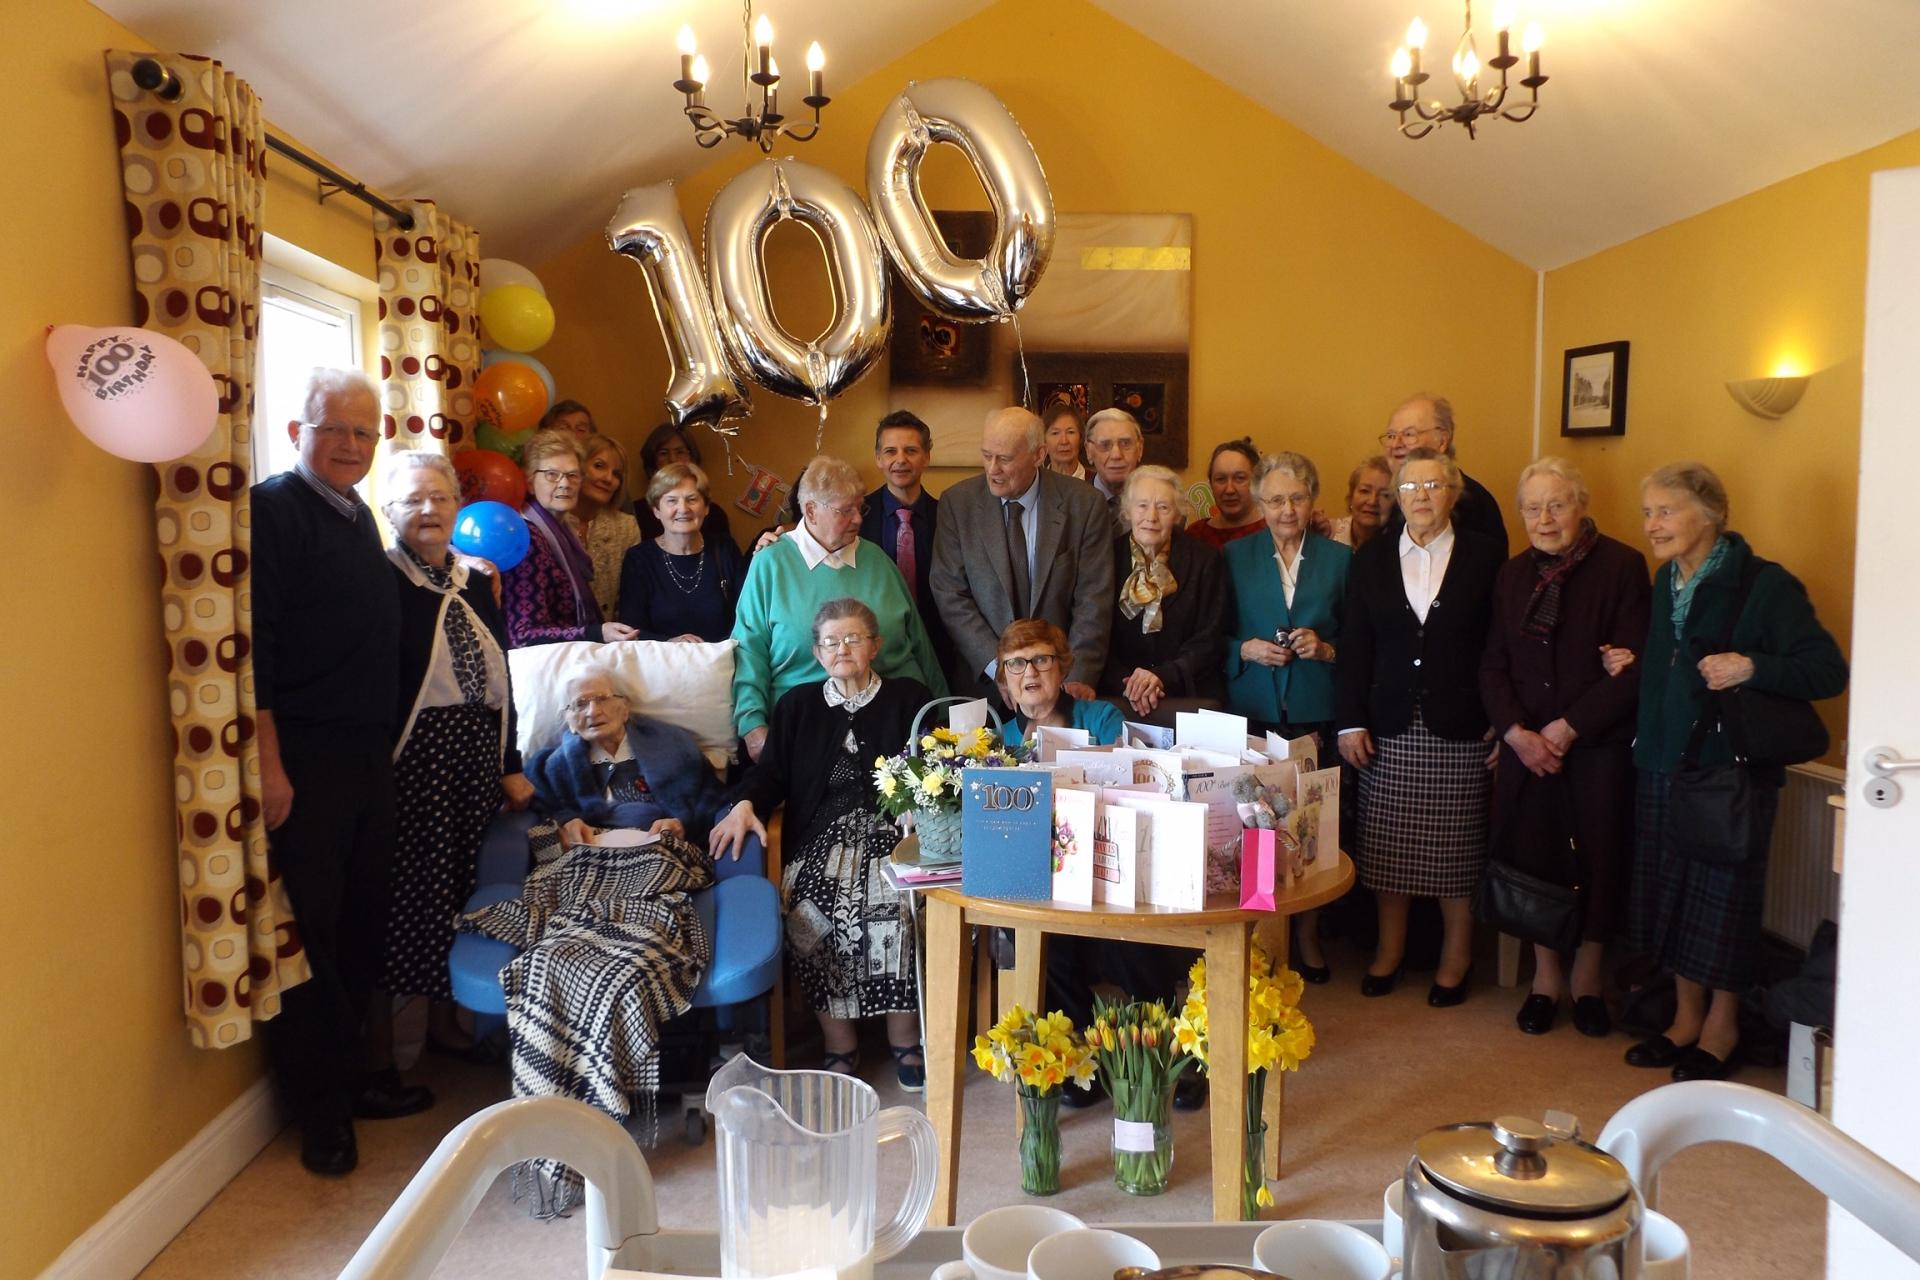 Niece Travelled From Australia For Laois Ladys 100th Birthday Celebrations